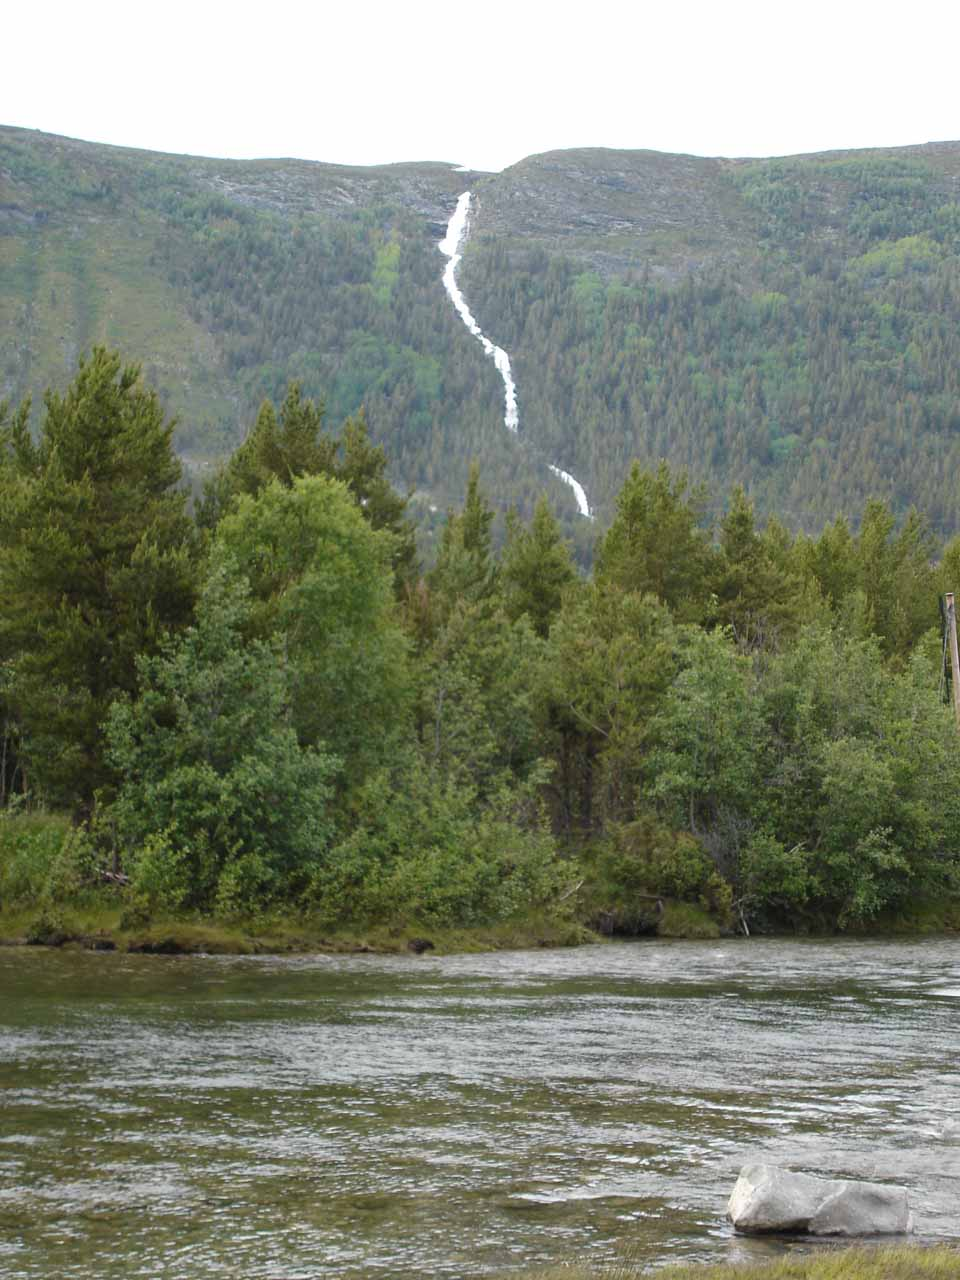 A very large waterfall off the Road 15 between Otta and Geiranger